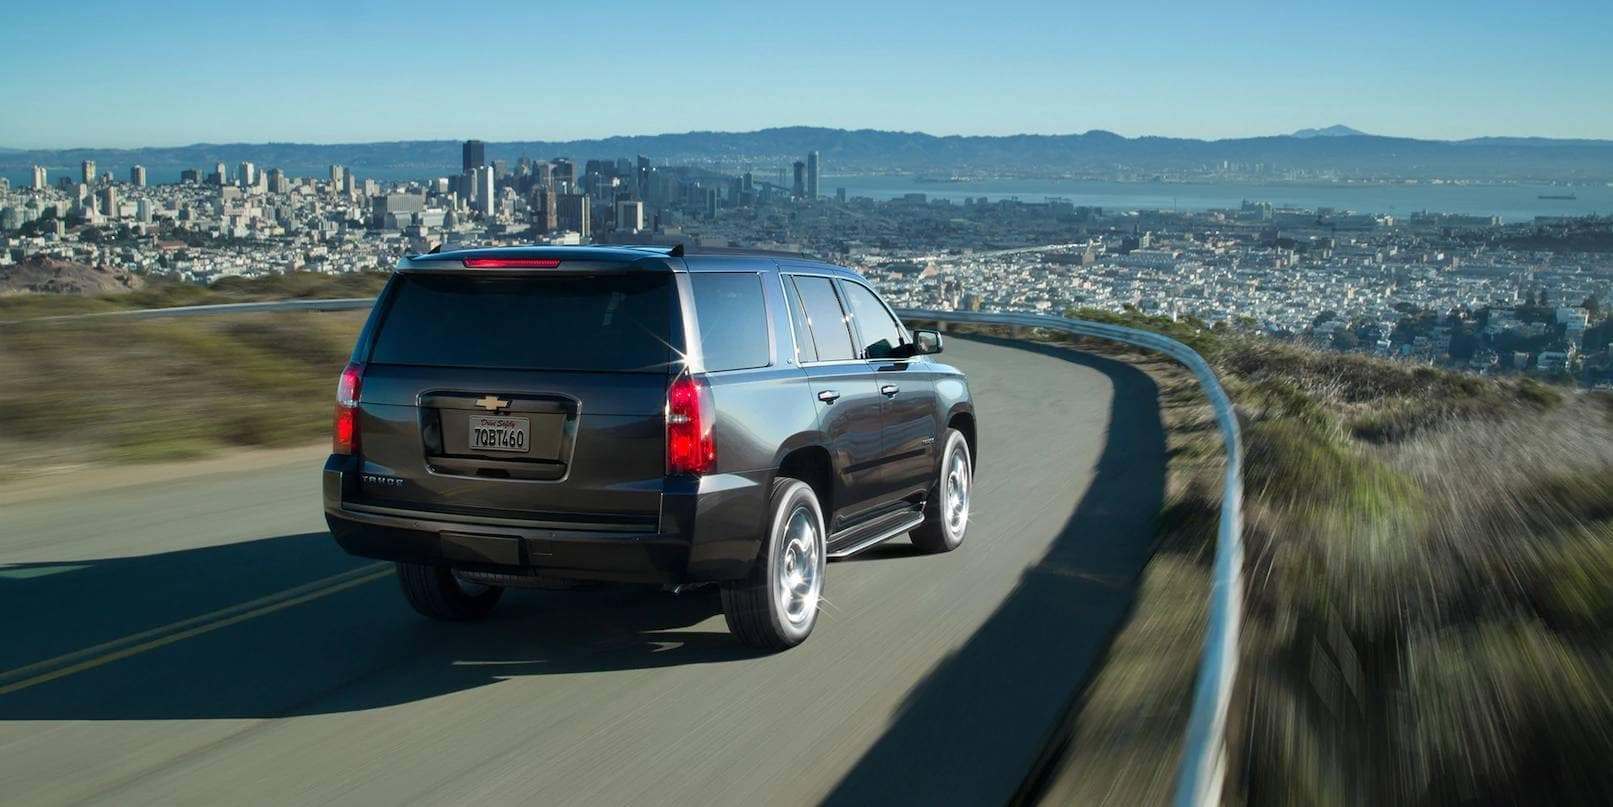 2019 Chevrolet Tahoe approaching city